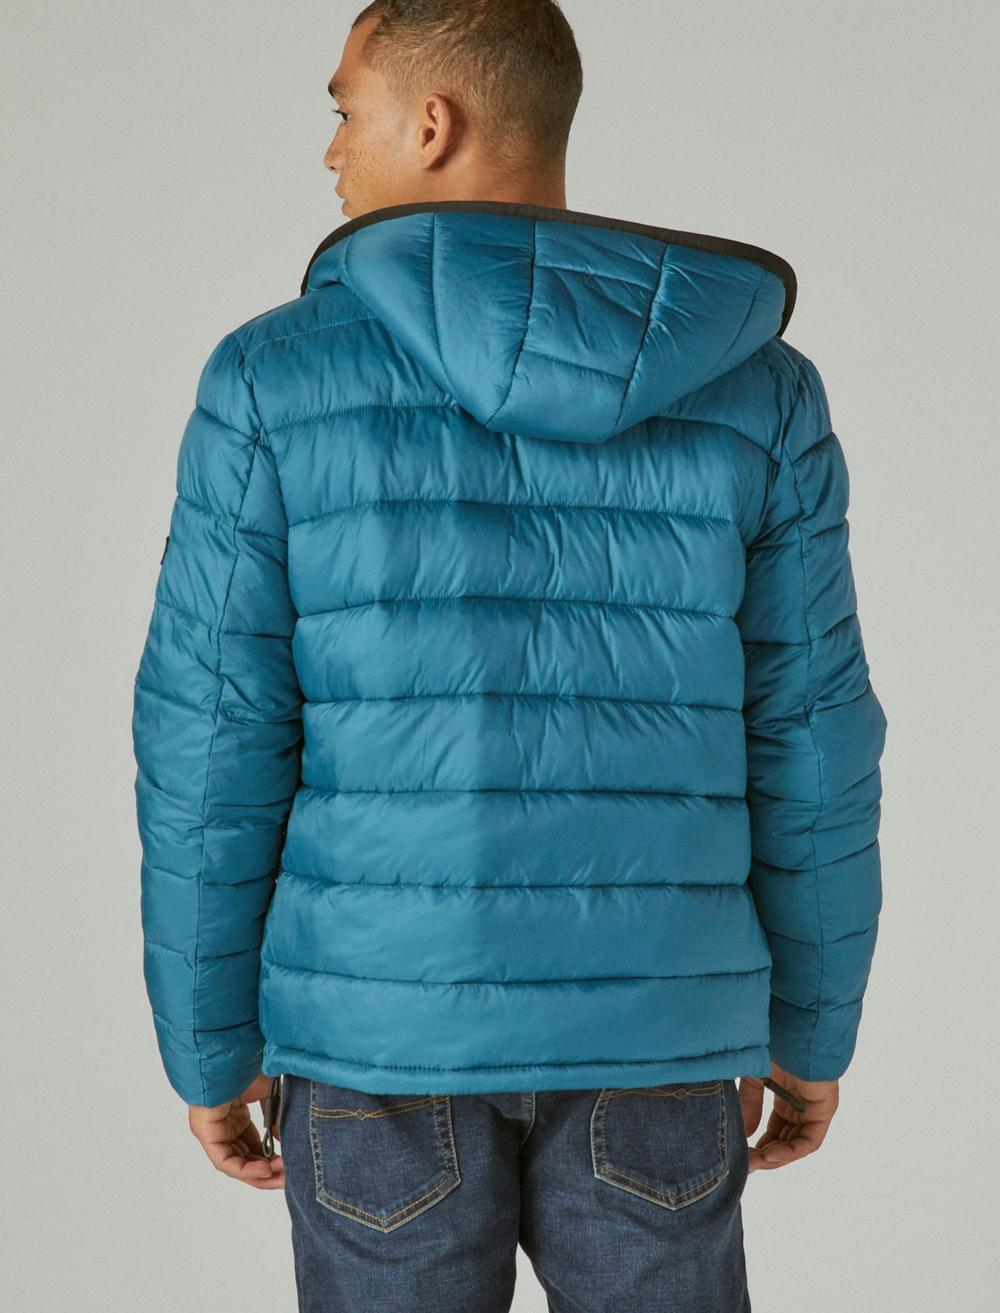 NYLON HOODED QUILTED PUFFER JACKET, image 4